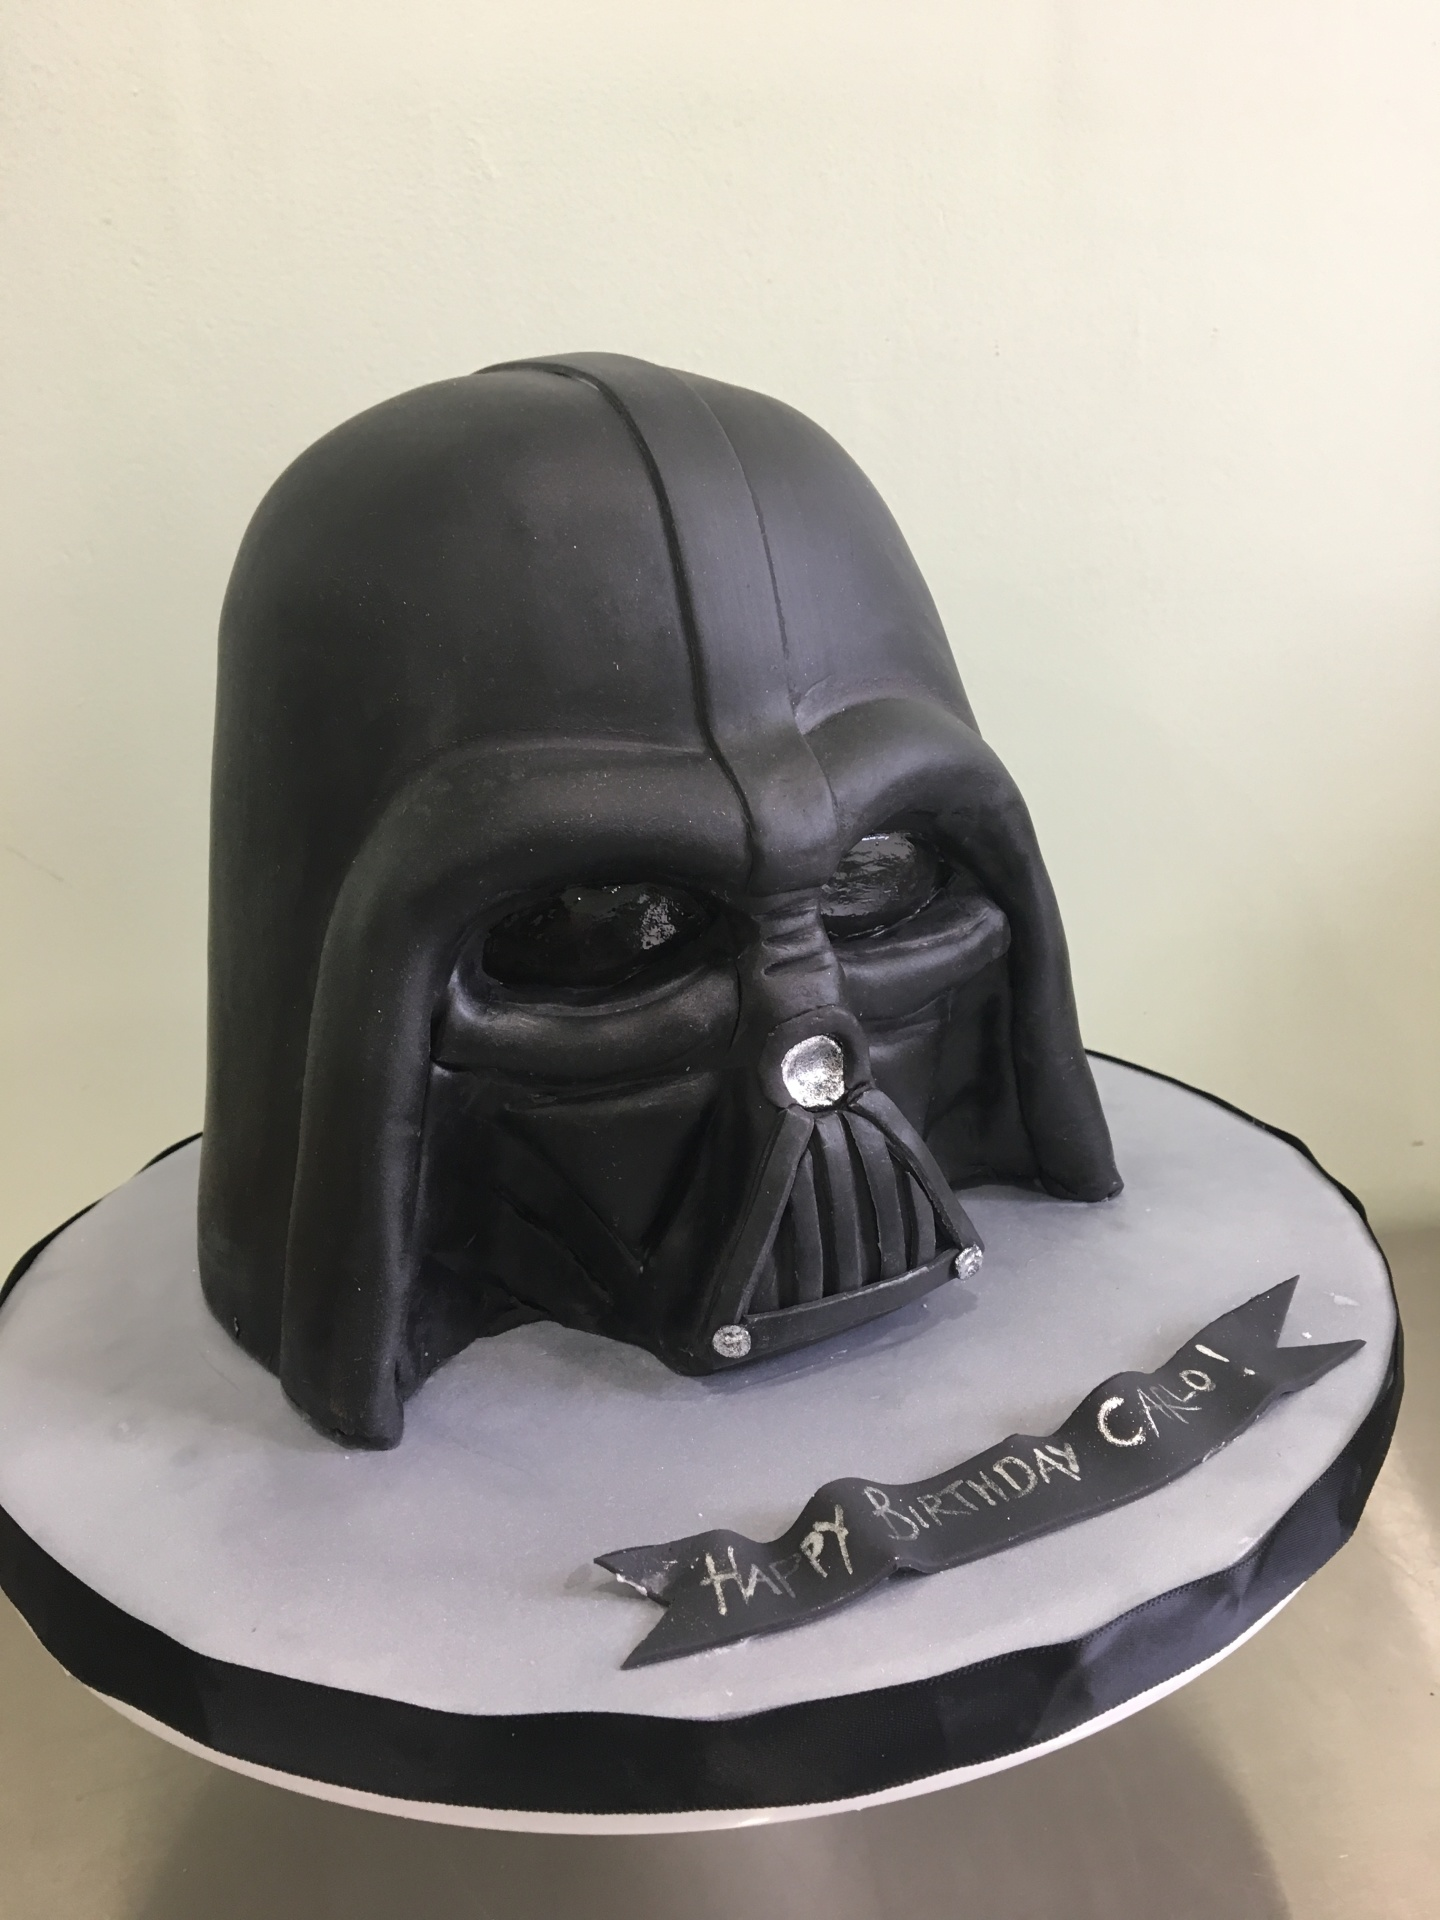 Custom Cakes NJ Darth Vader Helmet